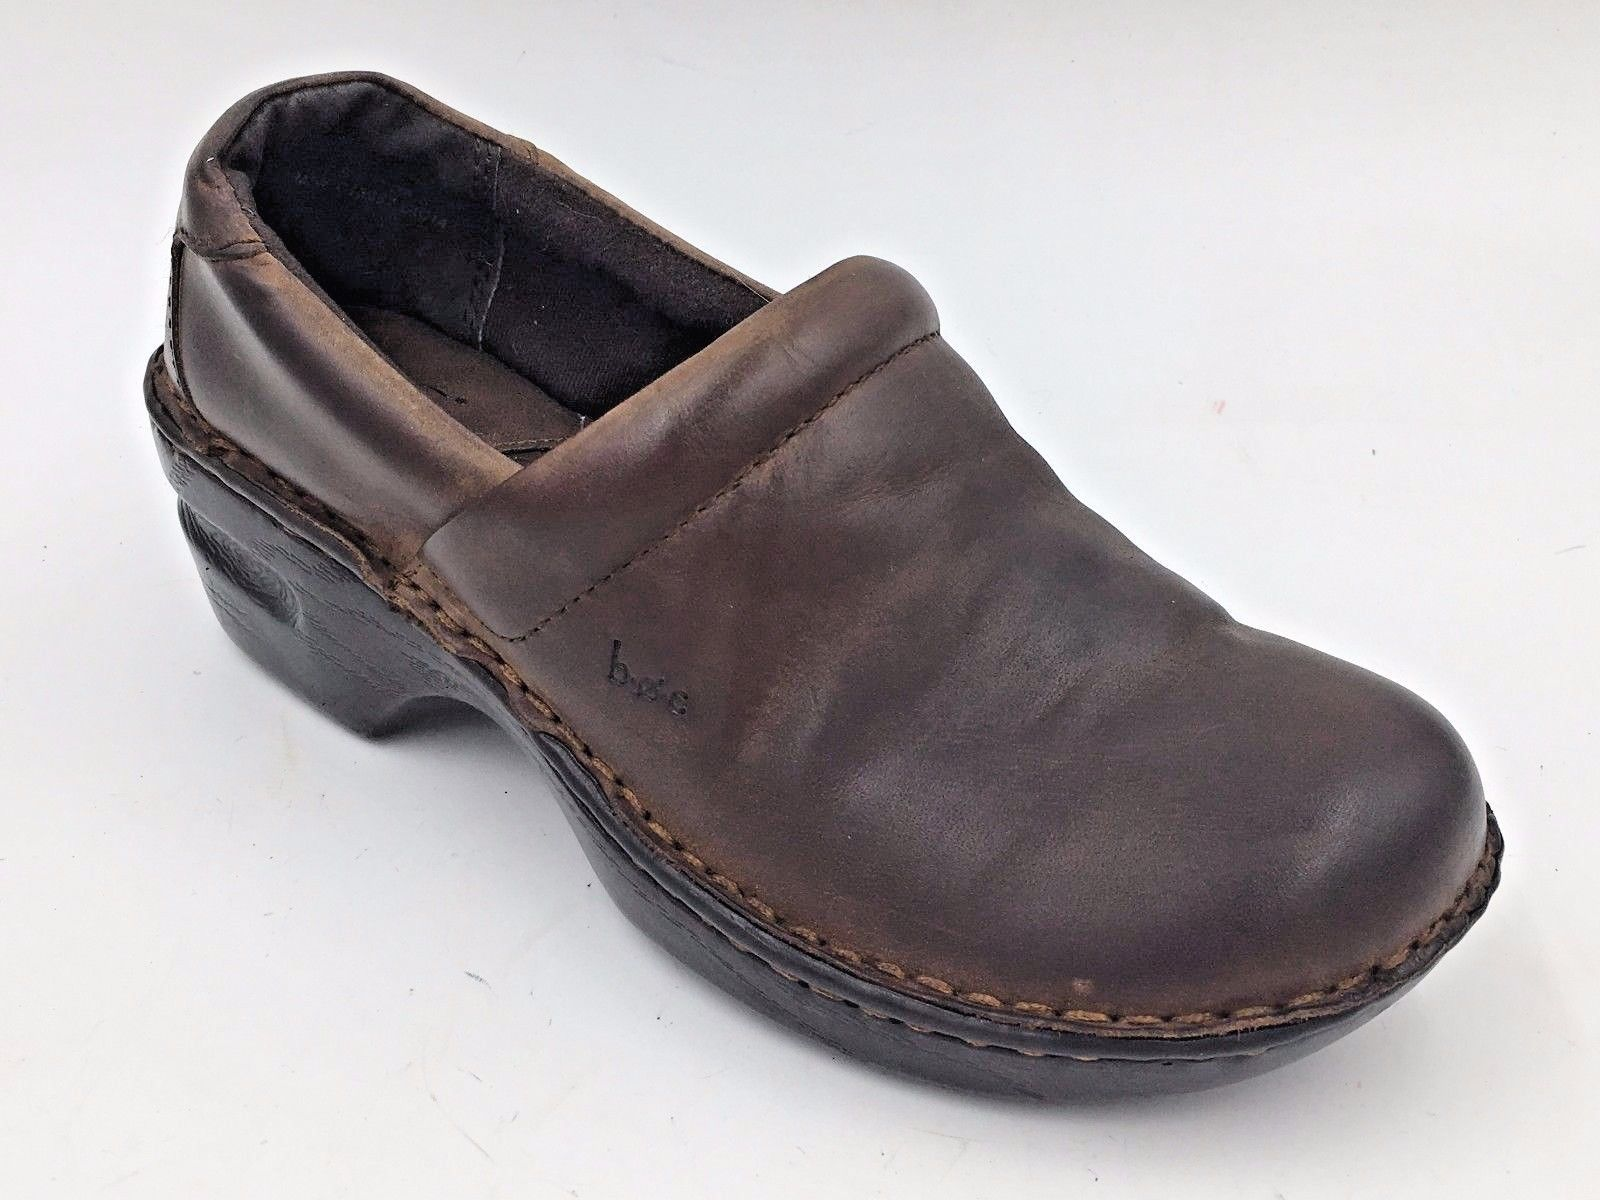 Comfort Shoes Born Size 8 Brown Leather Clogs Mocs Comfort Shoes Pre-owned Reasonable Price